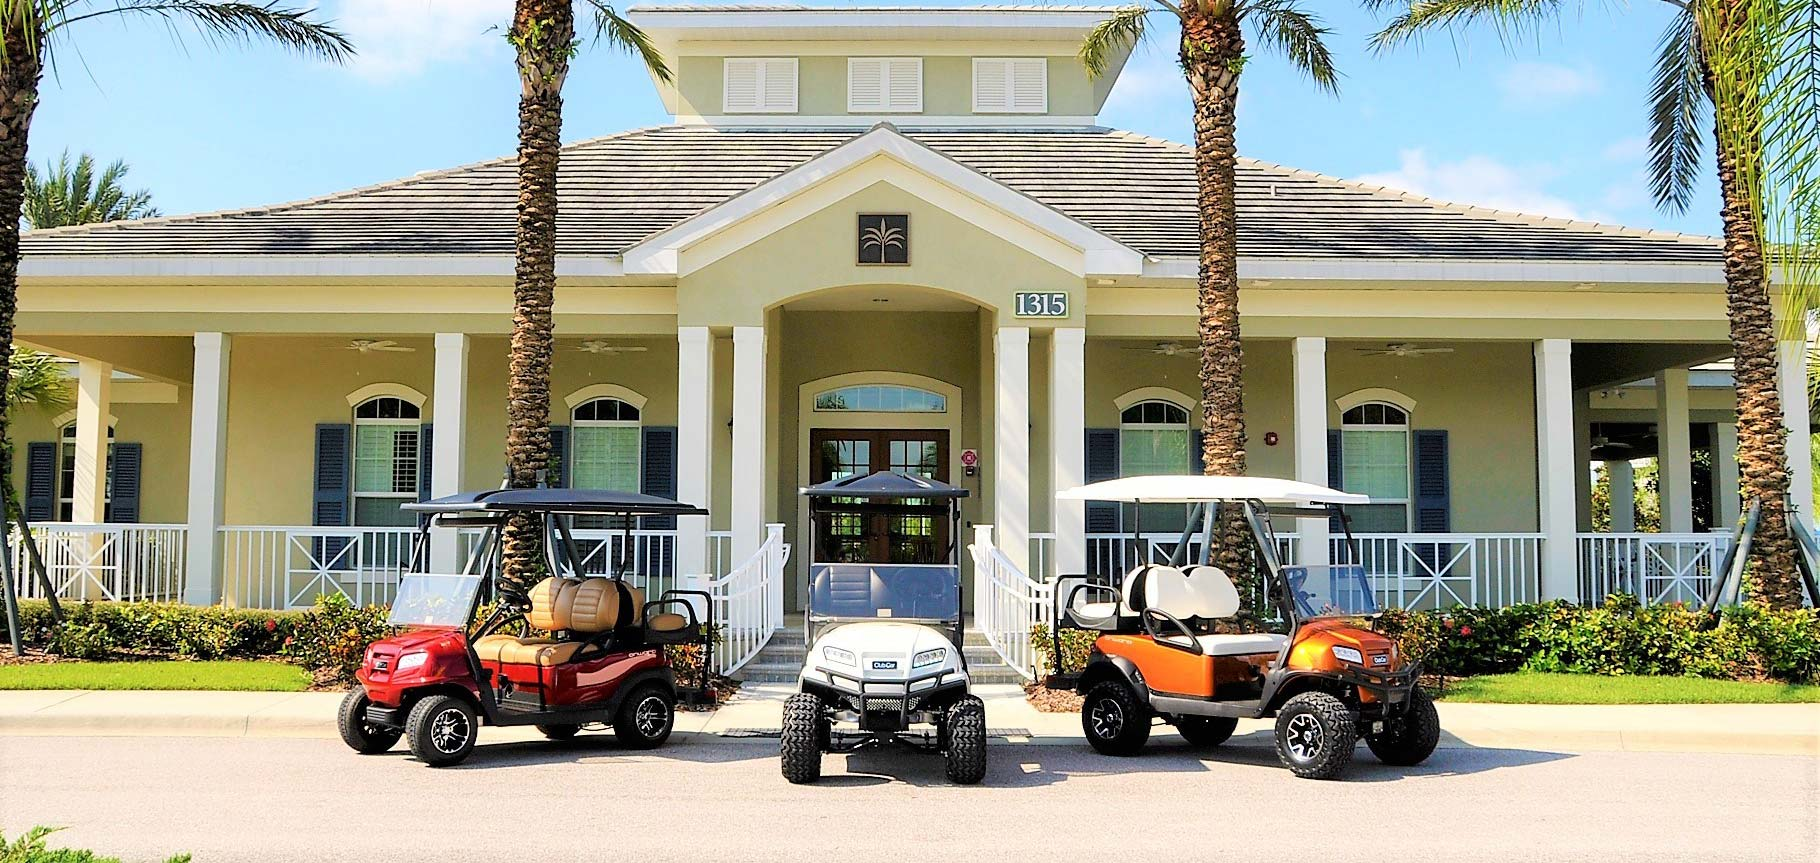 Lineup of three golf carts in front of club image